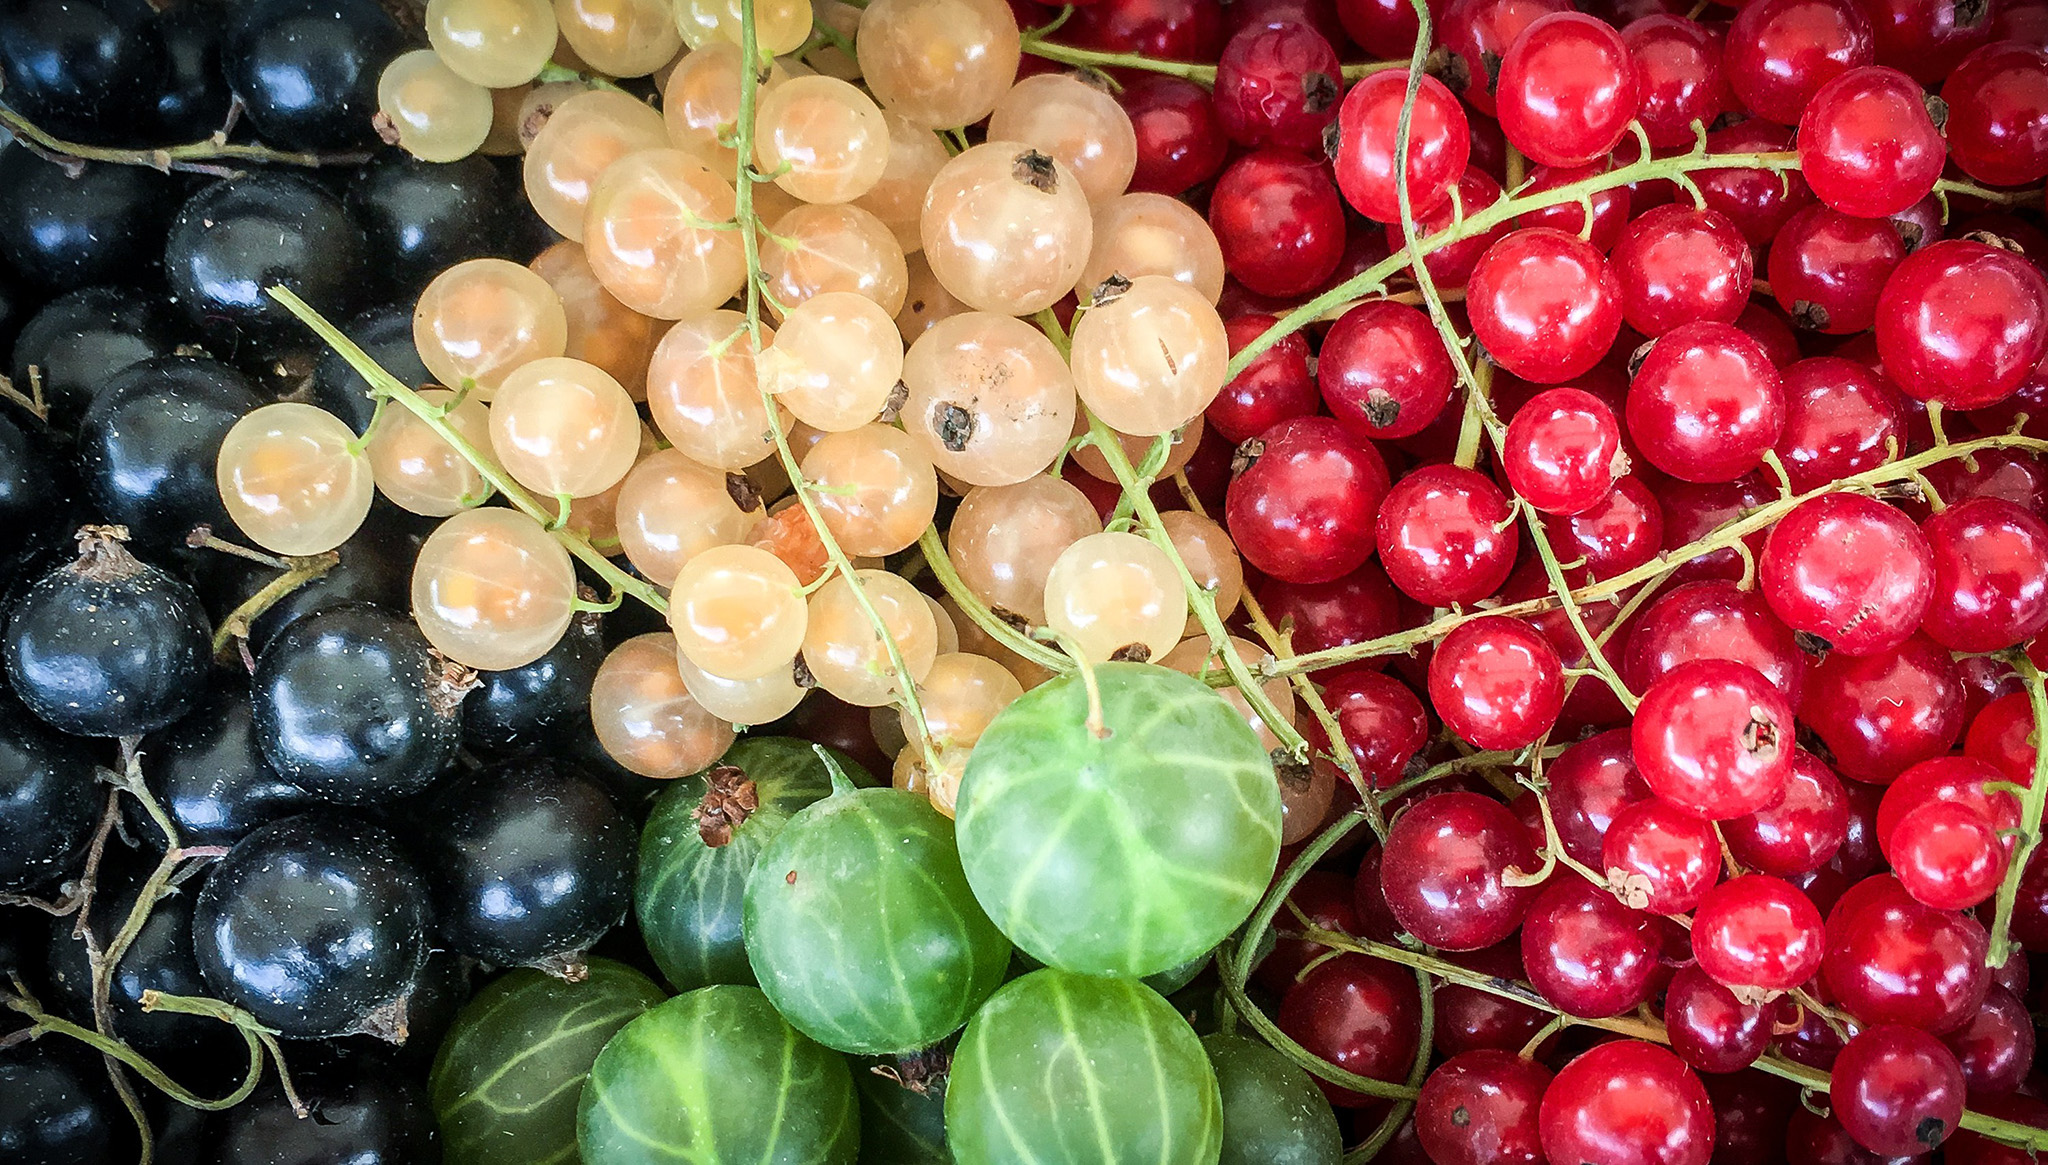 (K)not to be pedantic but which of these berries - let alone other unshown variants - represent the colour berry? | Image via BerlinPhotograph.